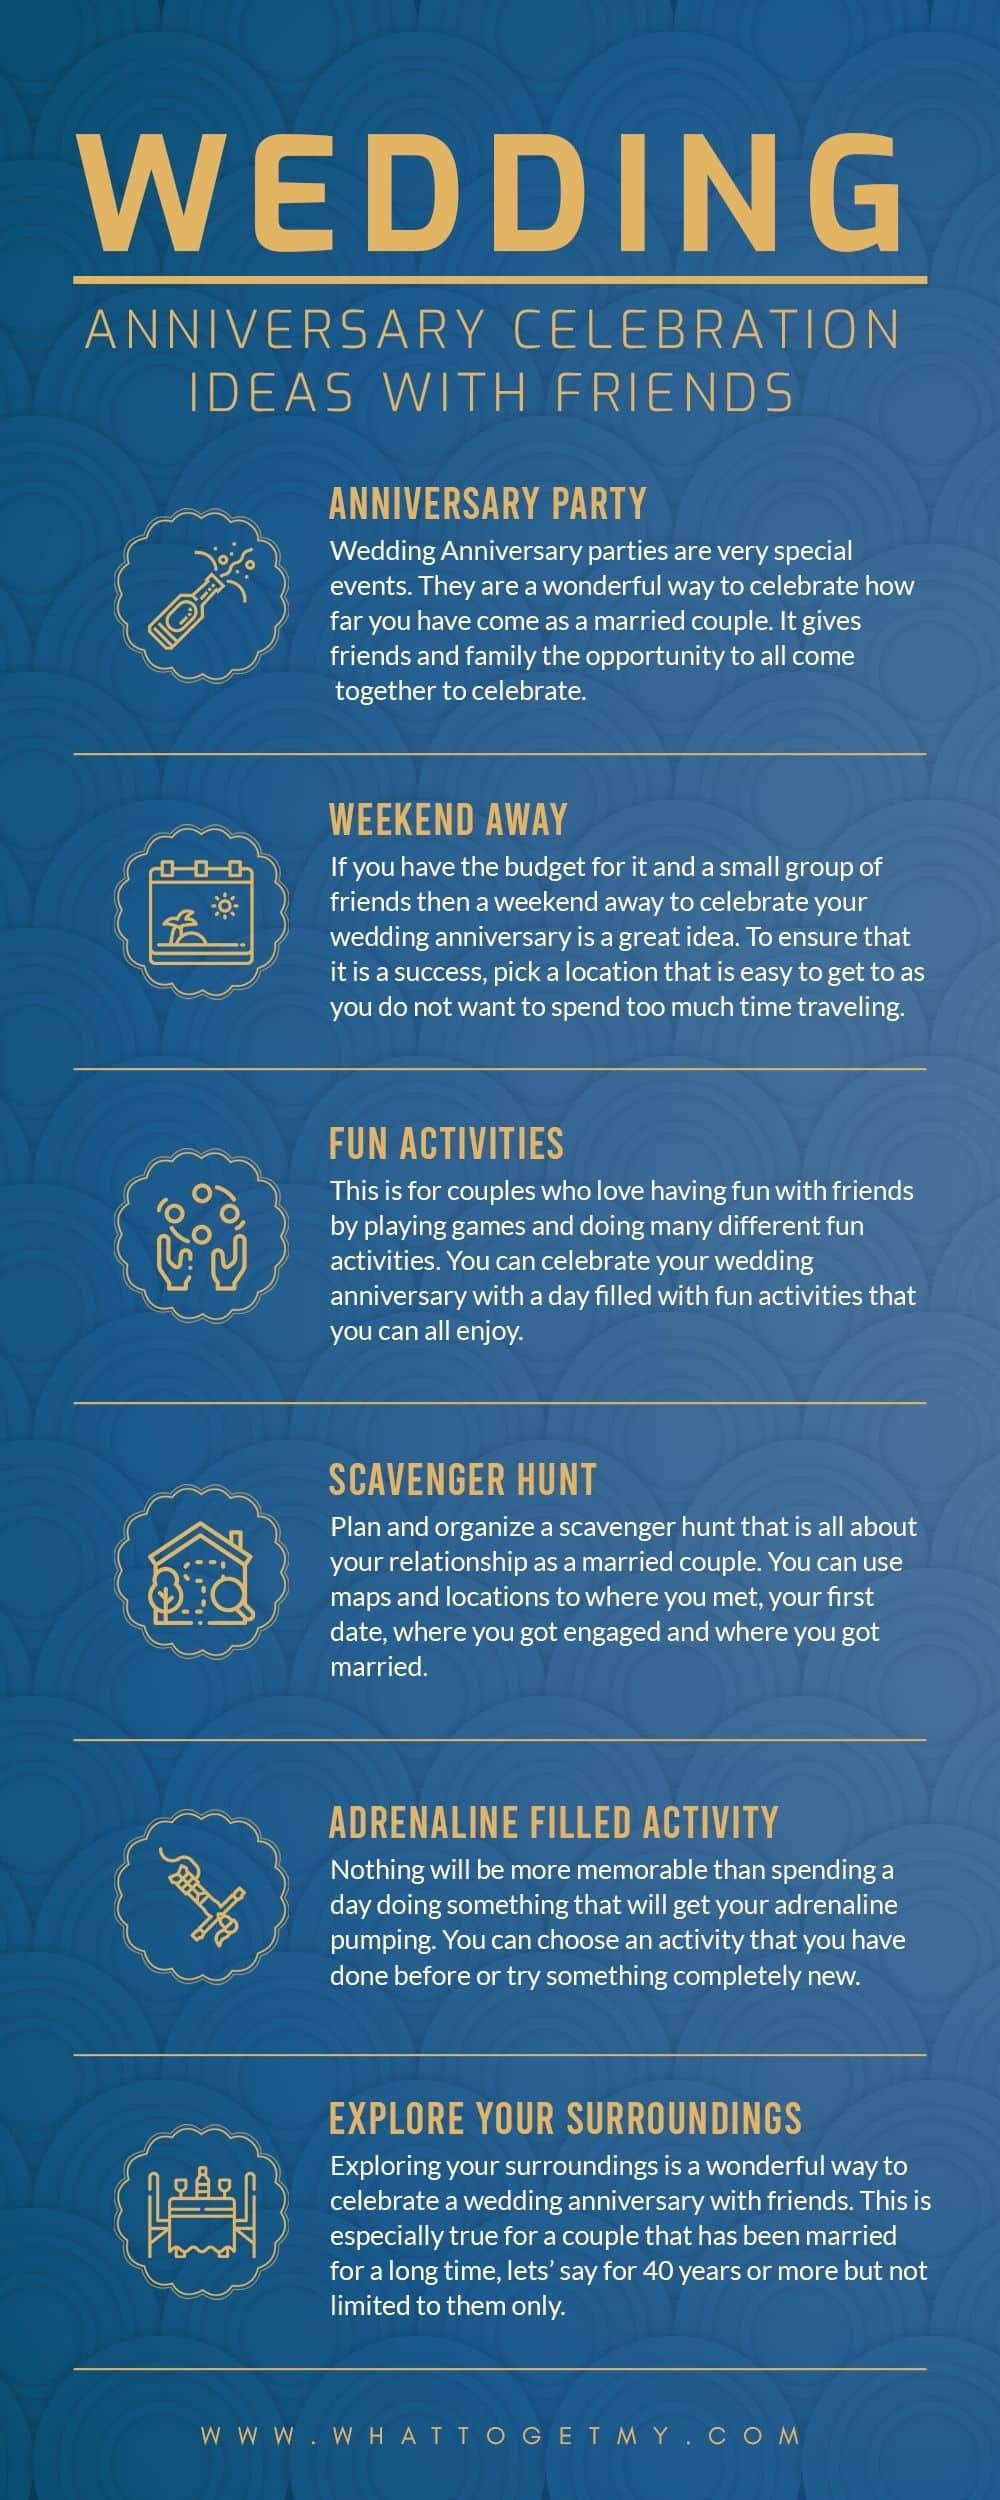 Infographic Wedding Anniversary Celebration Ideas With Friends